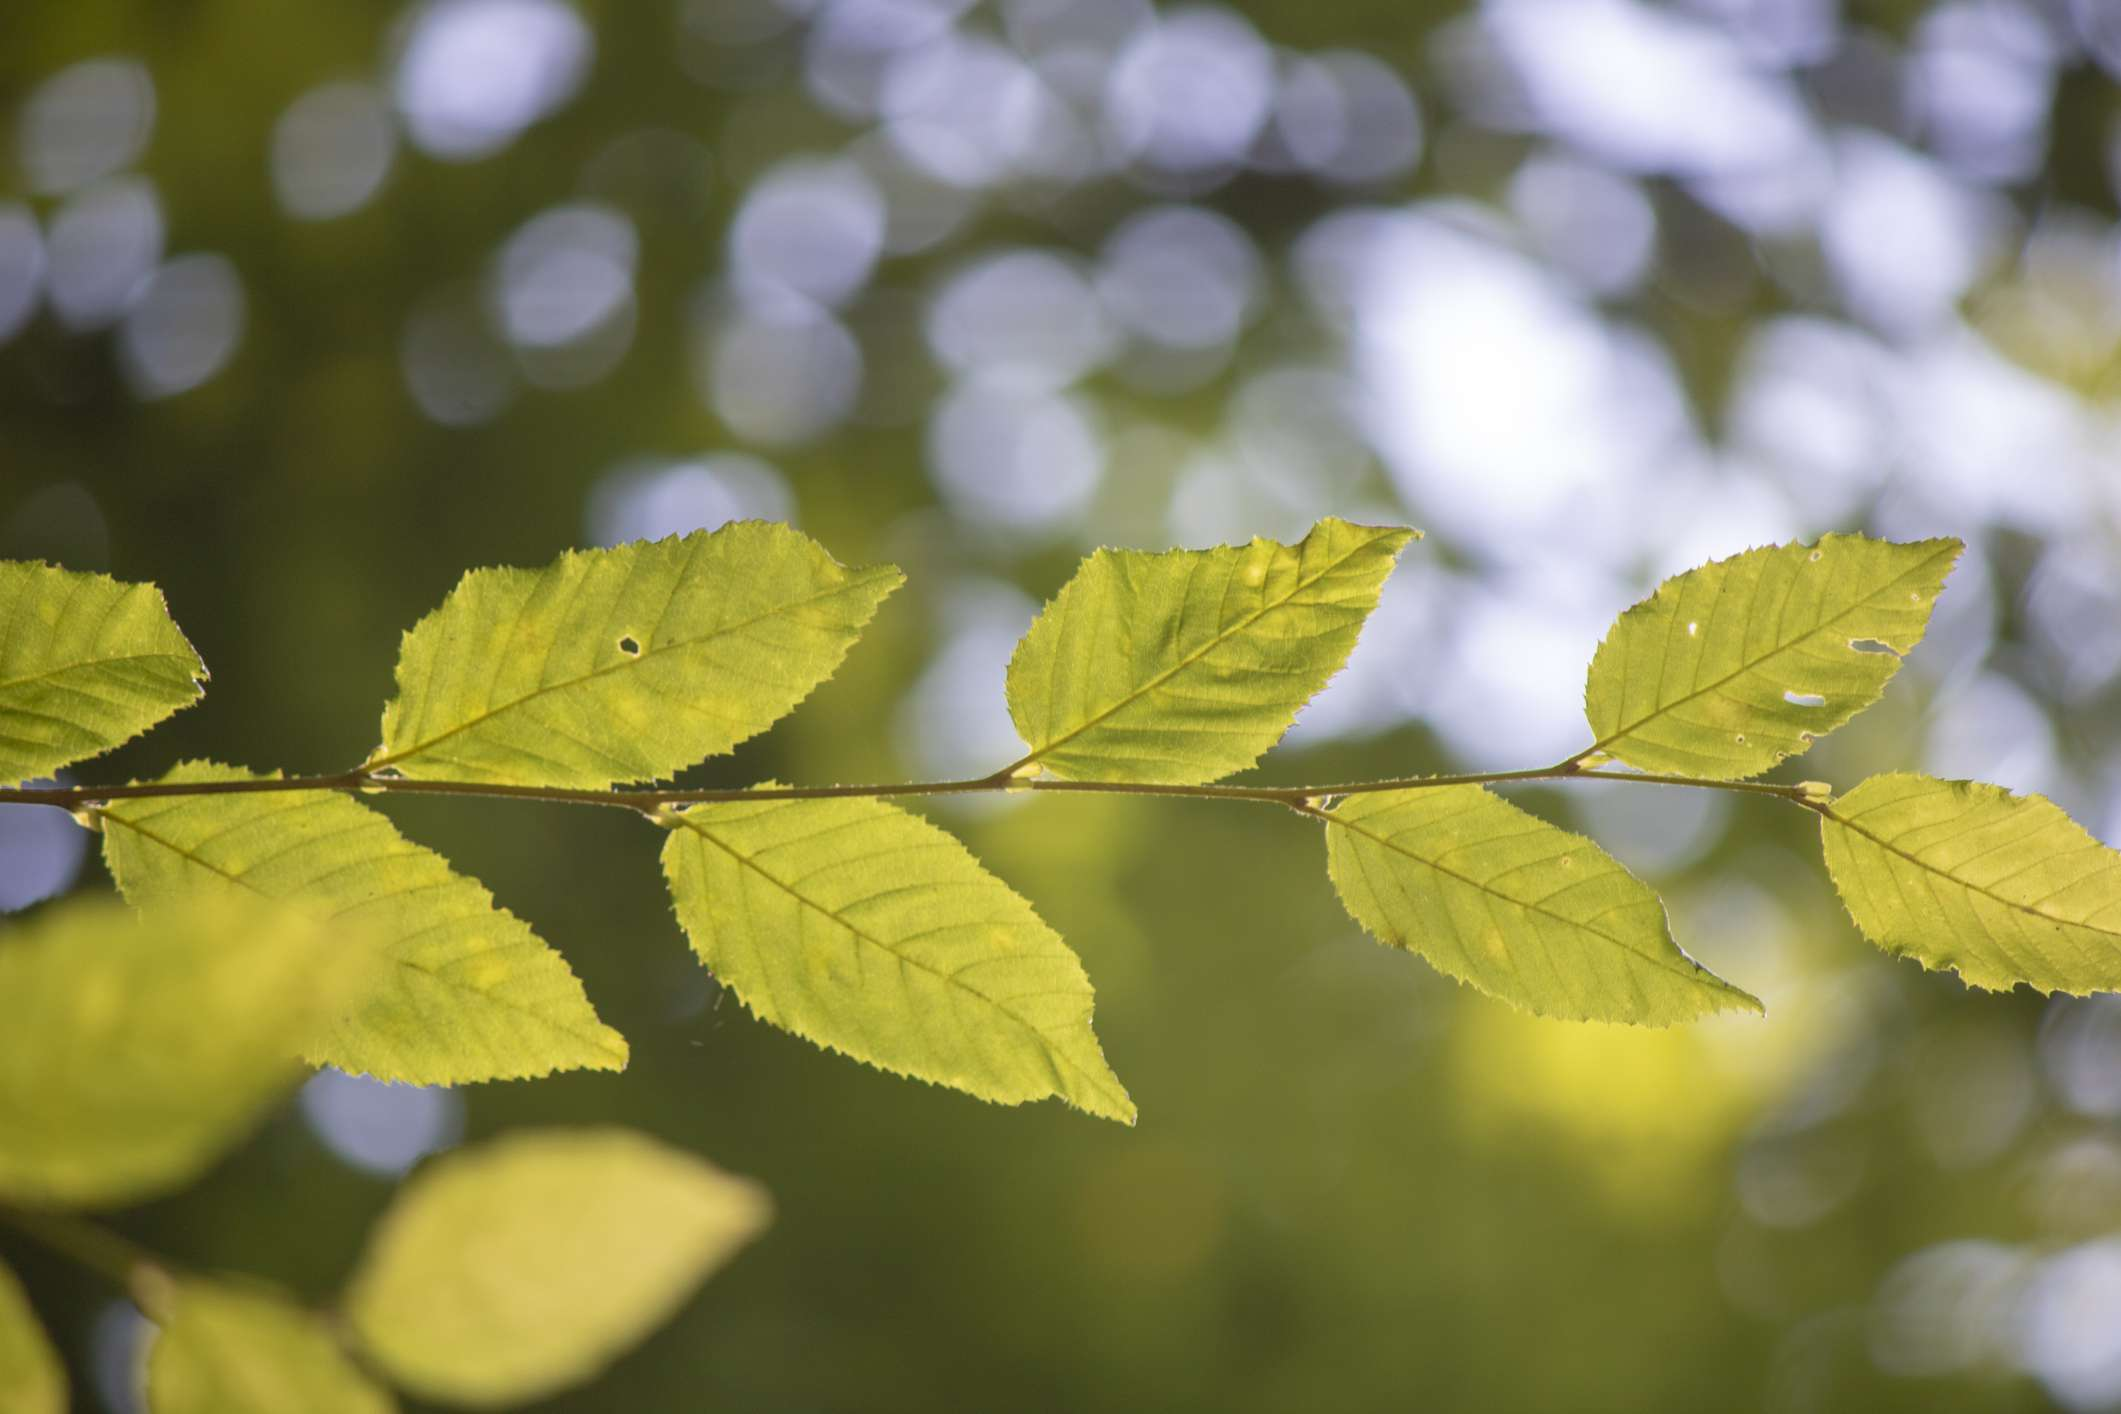 close up of the leaves of a cherry birch tree. Branch from left to right.